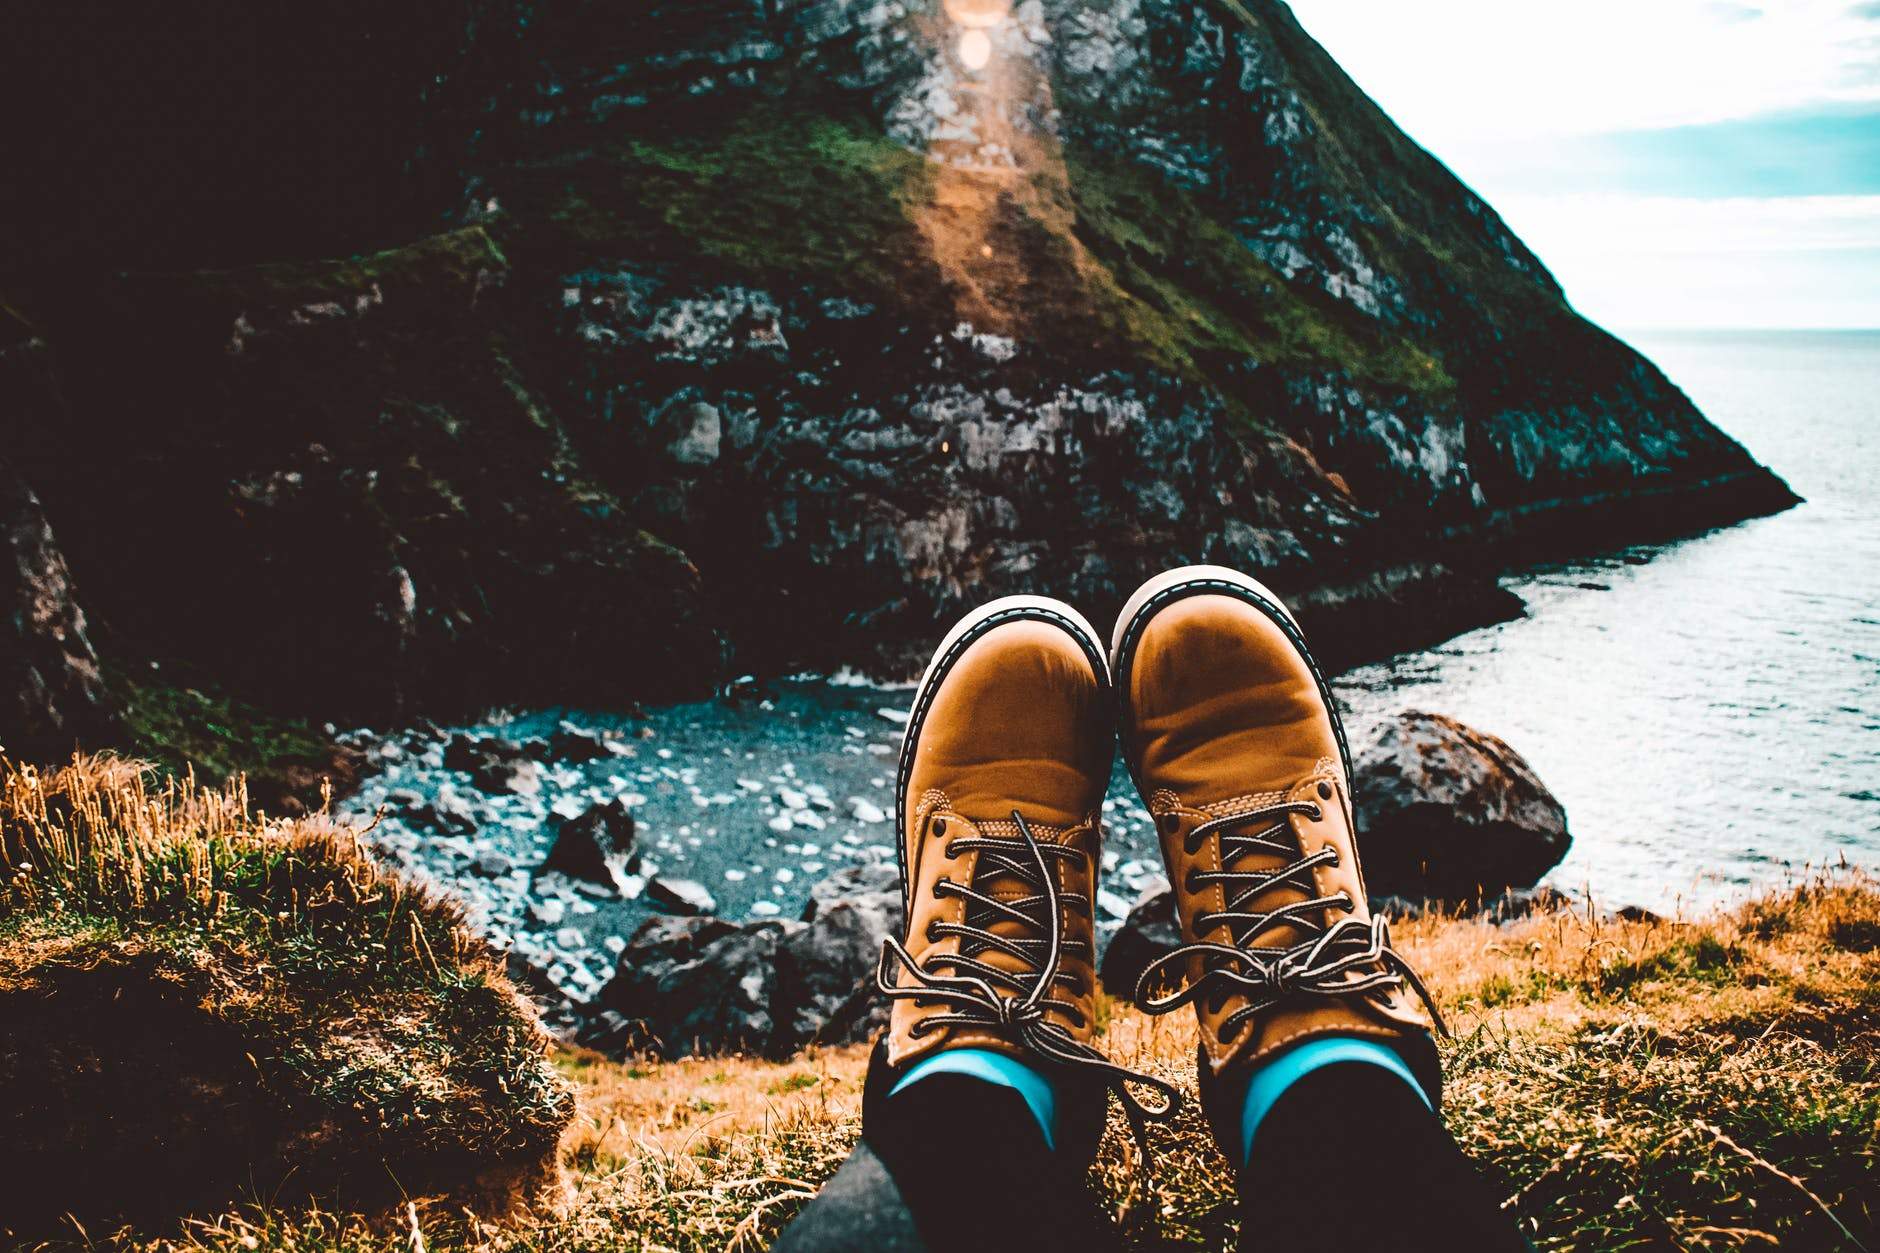 A person is wearing a nike hiking boots while sitting near the ocean